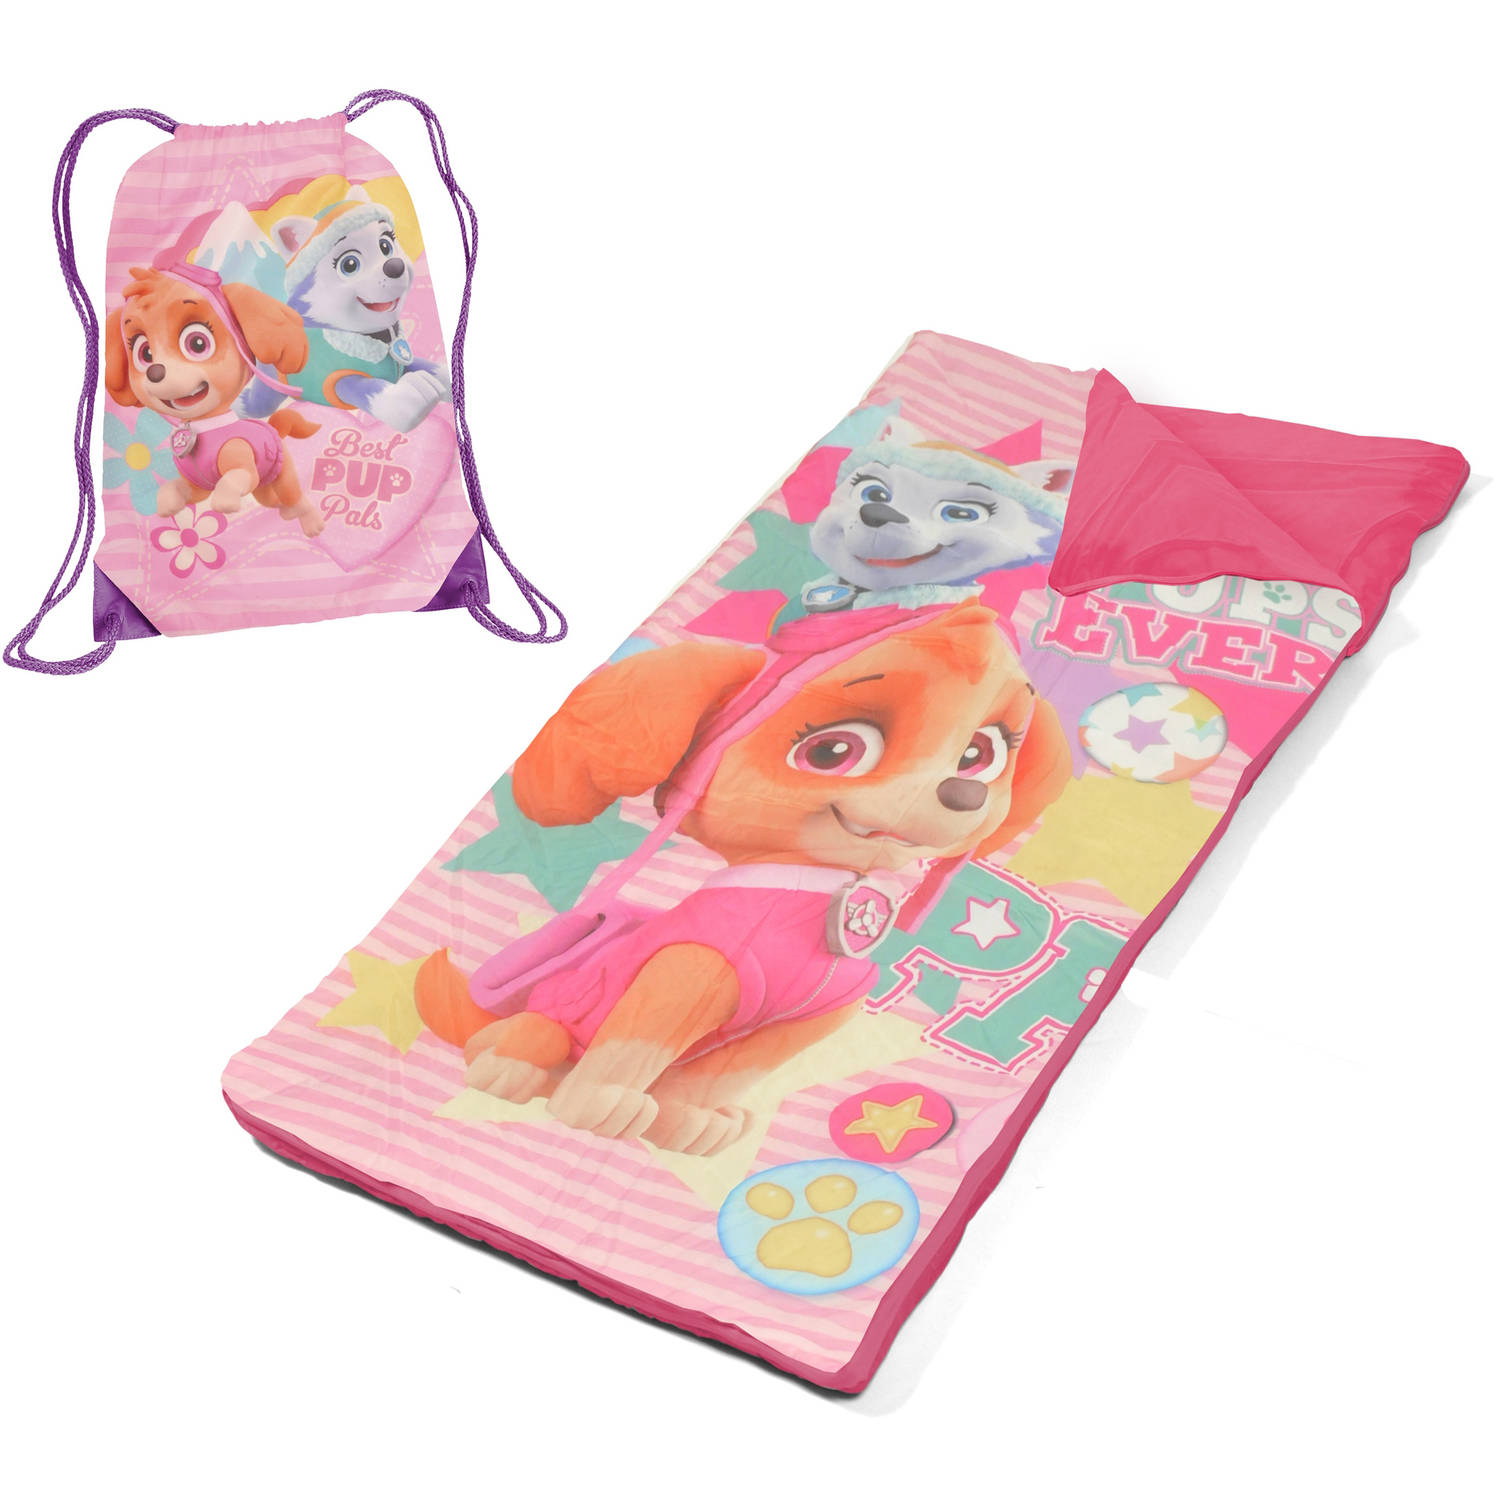 Nickelodeon Paw Patrol Girls' Sling Bag Slumber Nap Mat Set